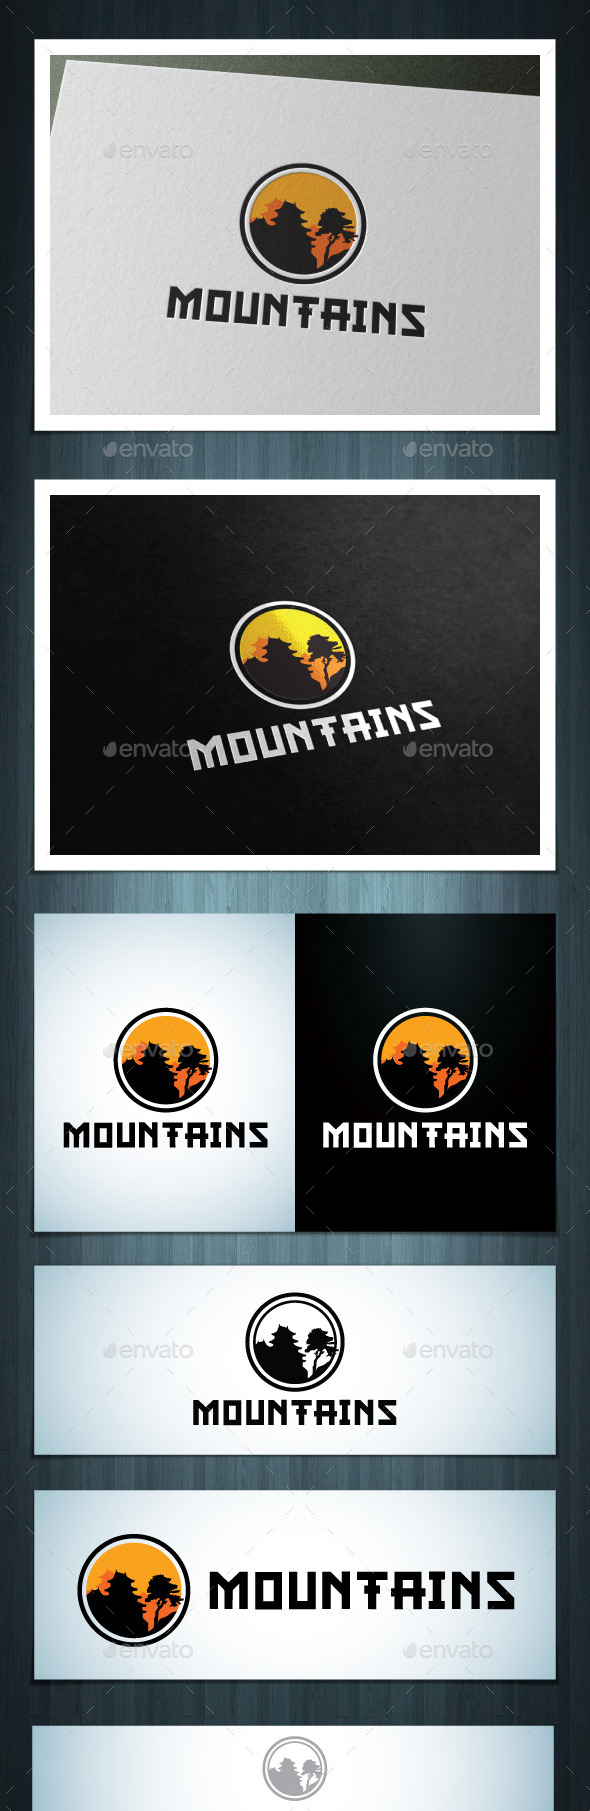 Mountains - Vector Abstract